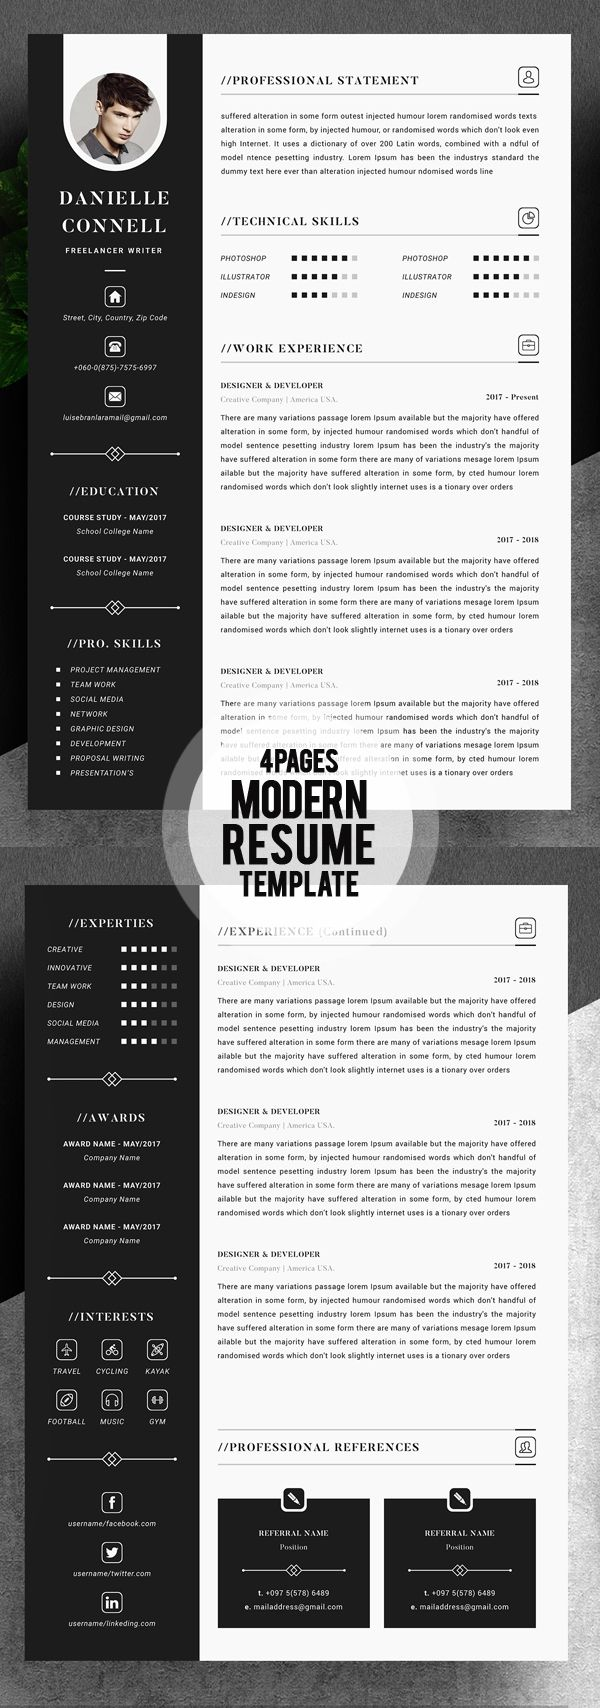 Basic Resume Template 2018 Modern Resume Template 2018 4 Pages #photoshopresume